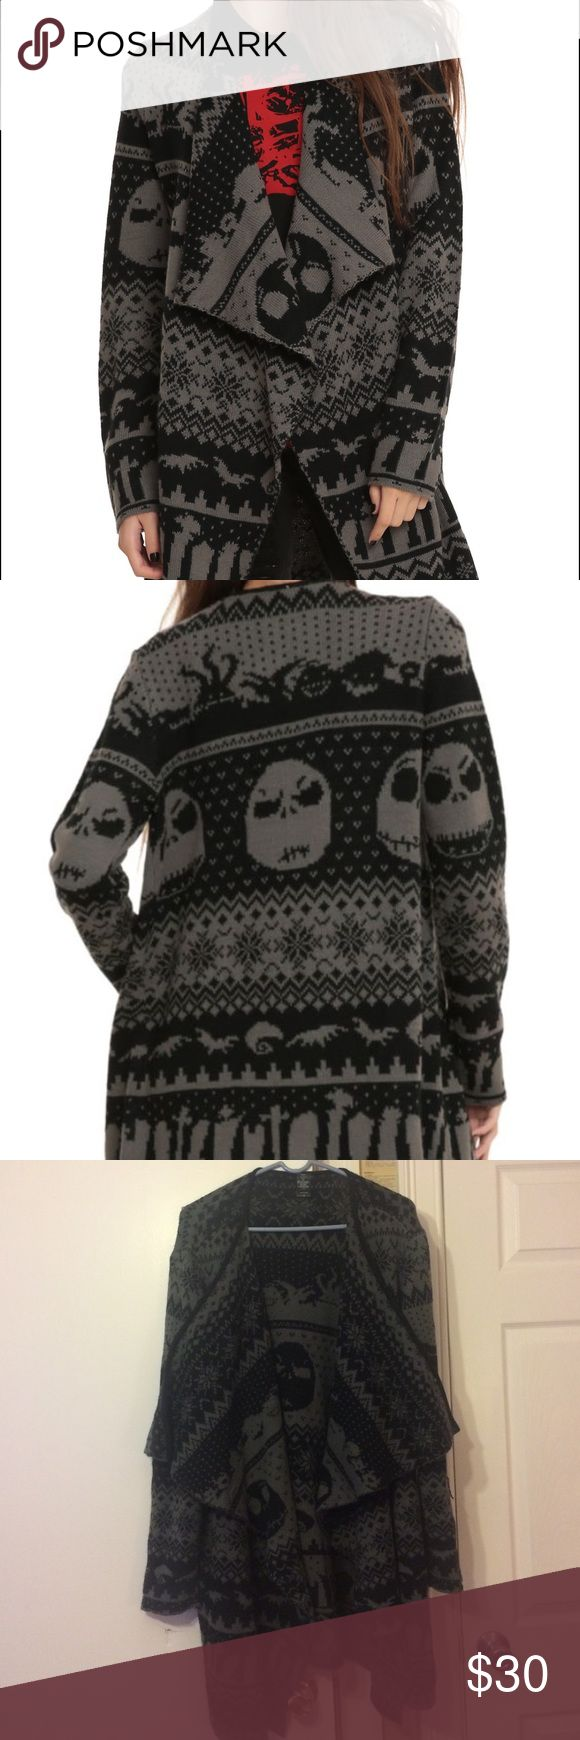 Nightmare Before Christmas Cardigan Hot Topic/Torrid The Nightmare Before Christmas cardigan in grey/black. Size 3x. Only worn a couple of times. torrid Sweaters Cardigans